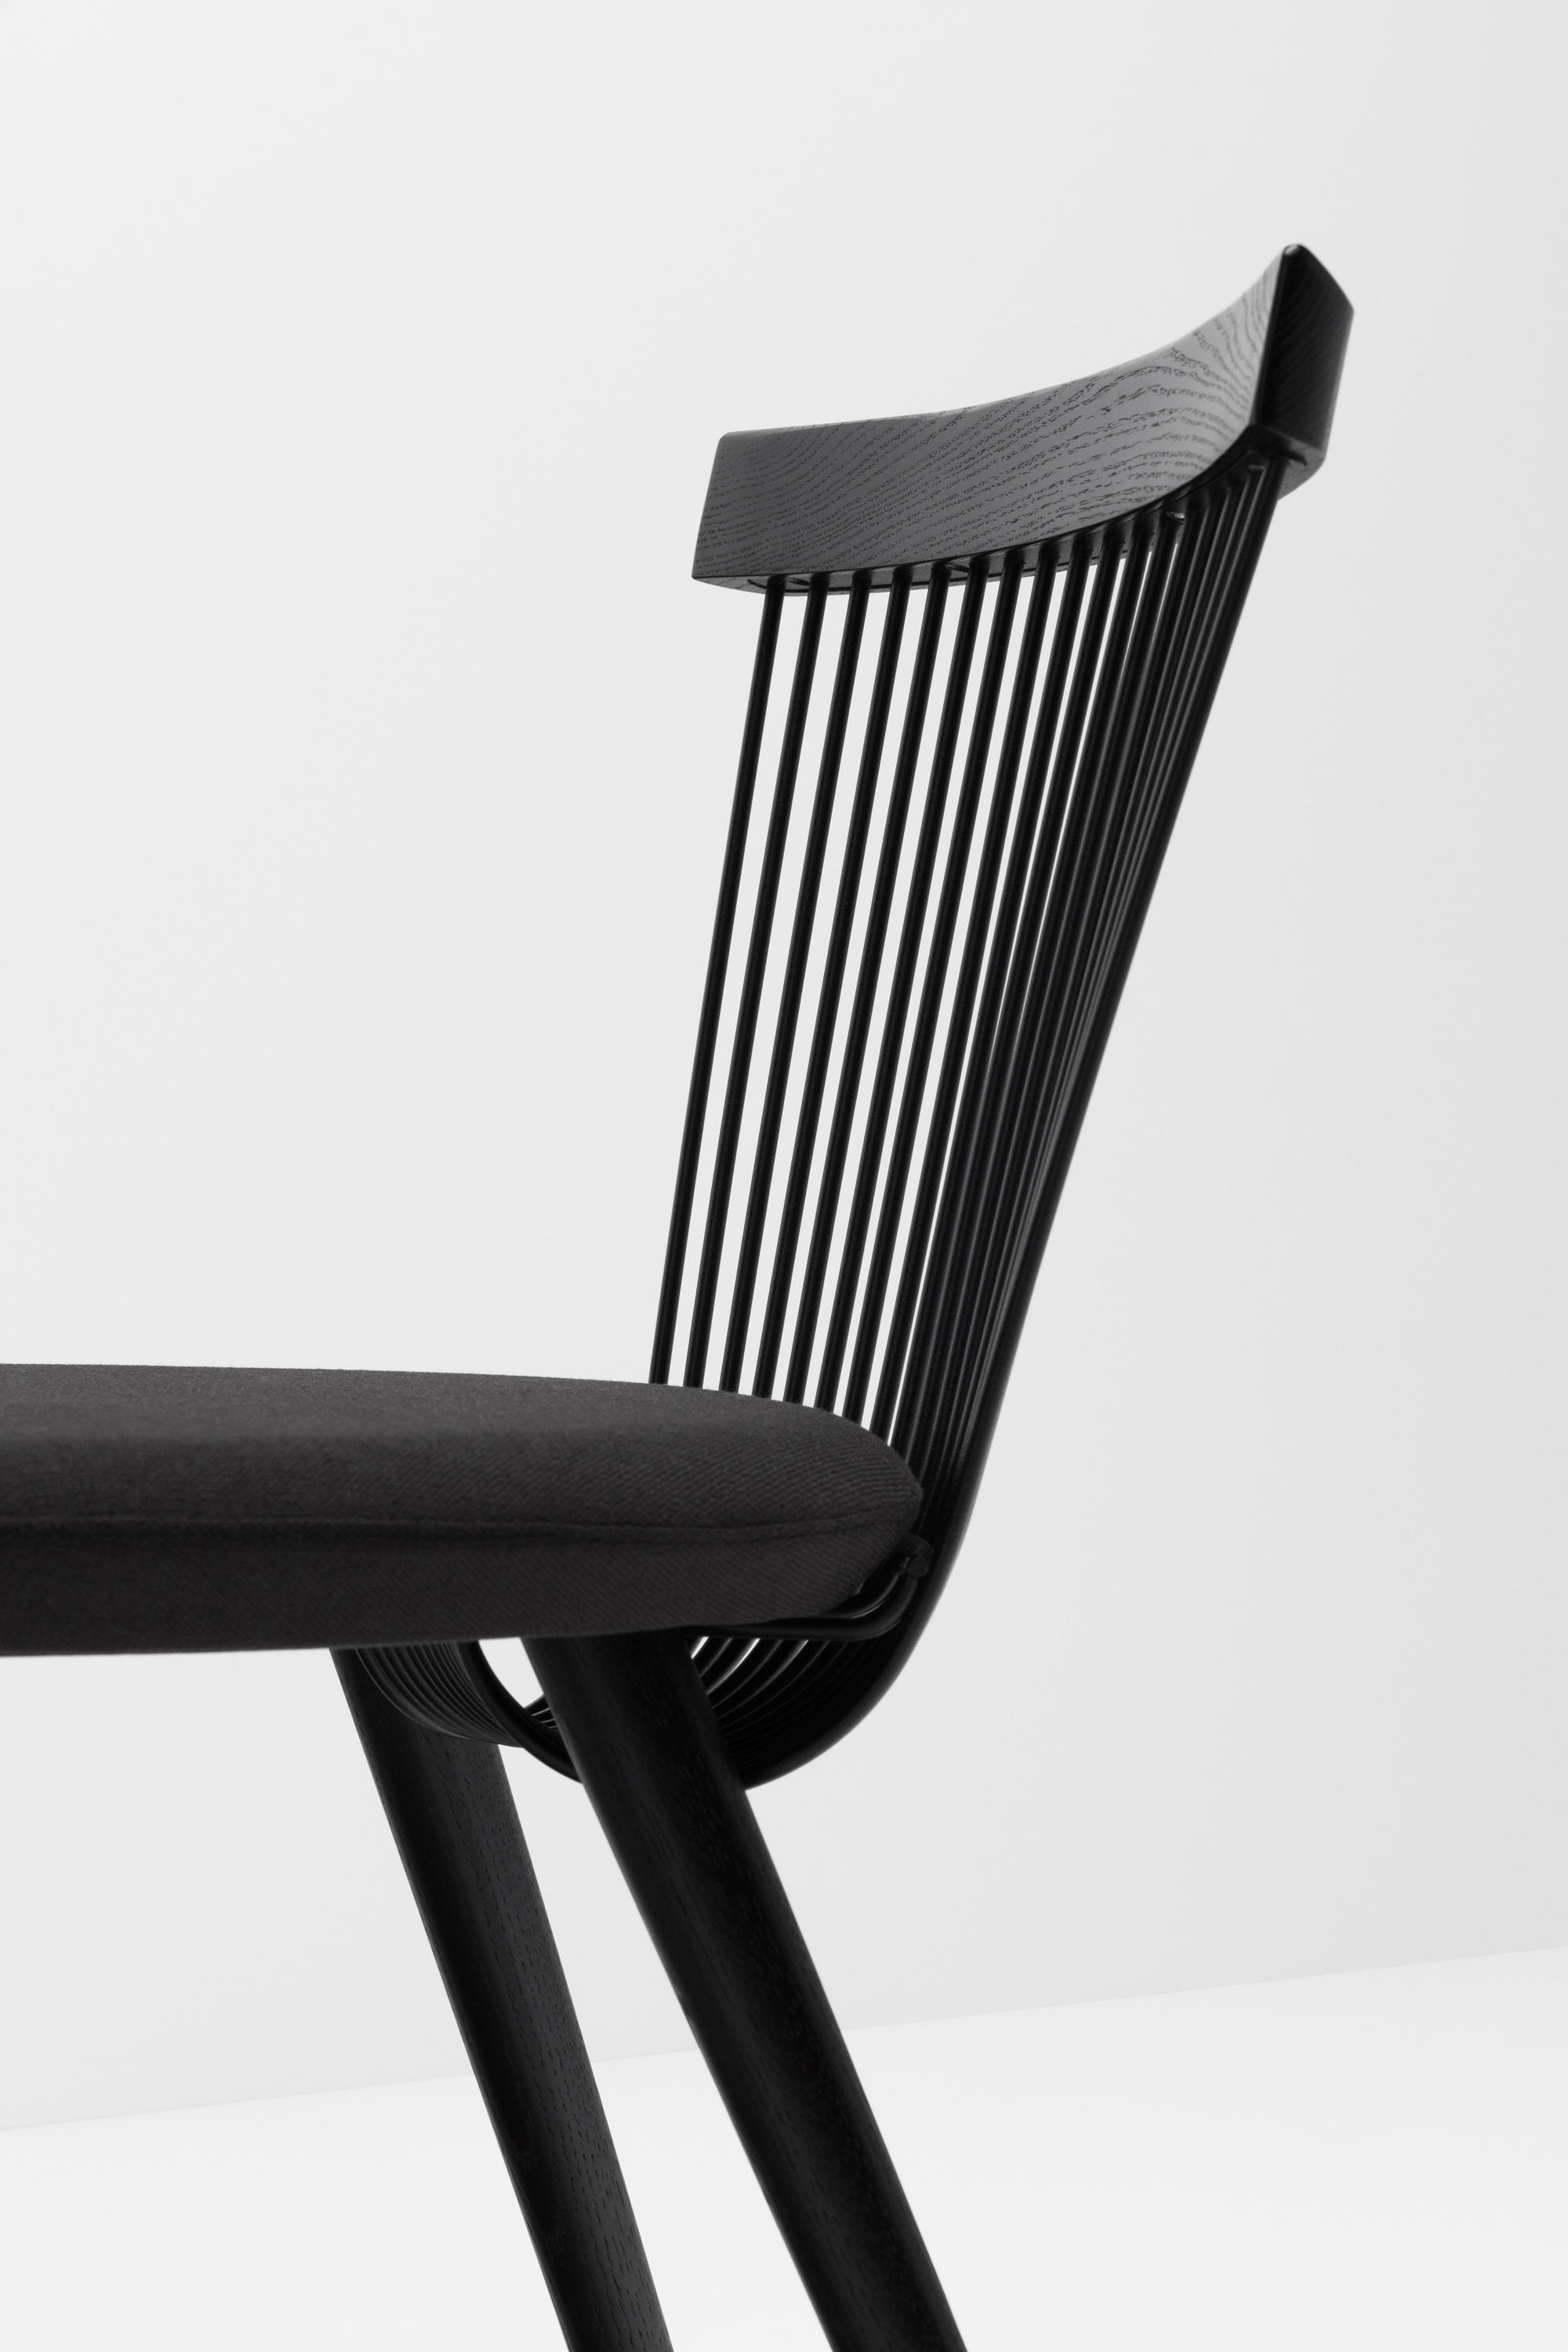 Ww Chair Upholstered By H Furniture Chairs